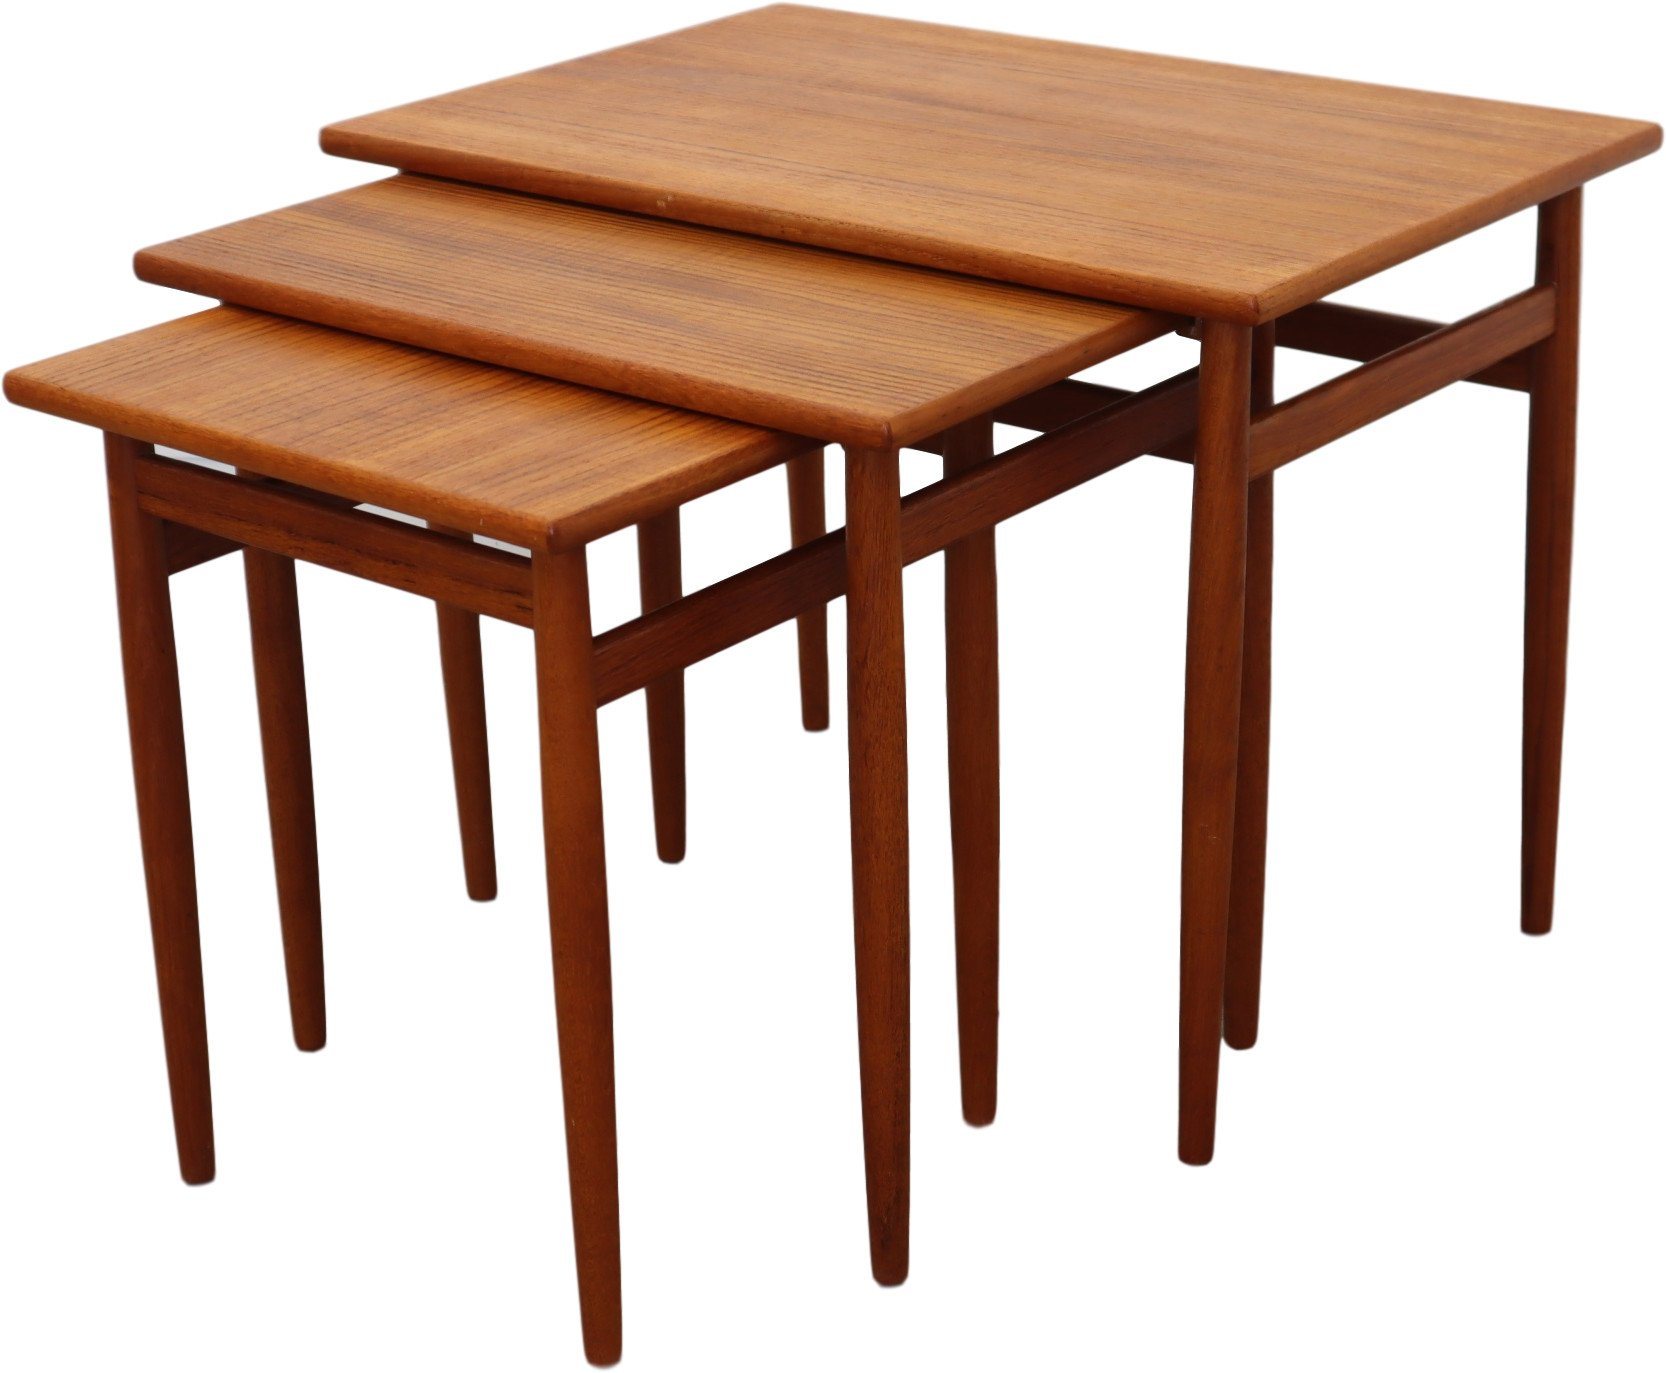 Set of Three Side Tables, Denmark, 1960s